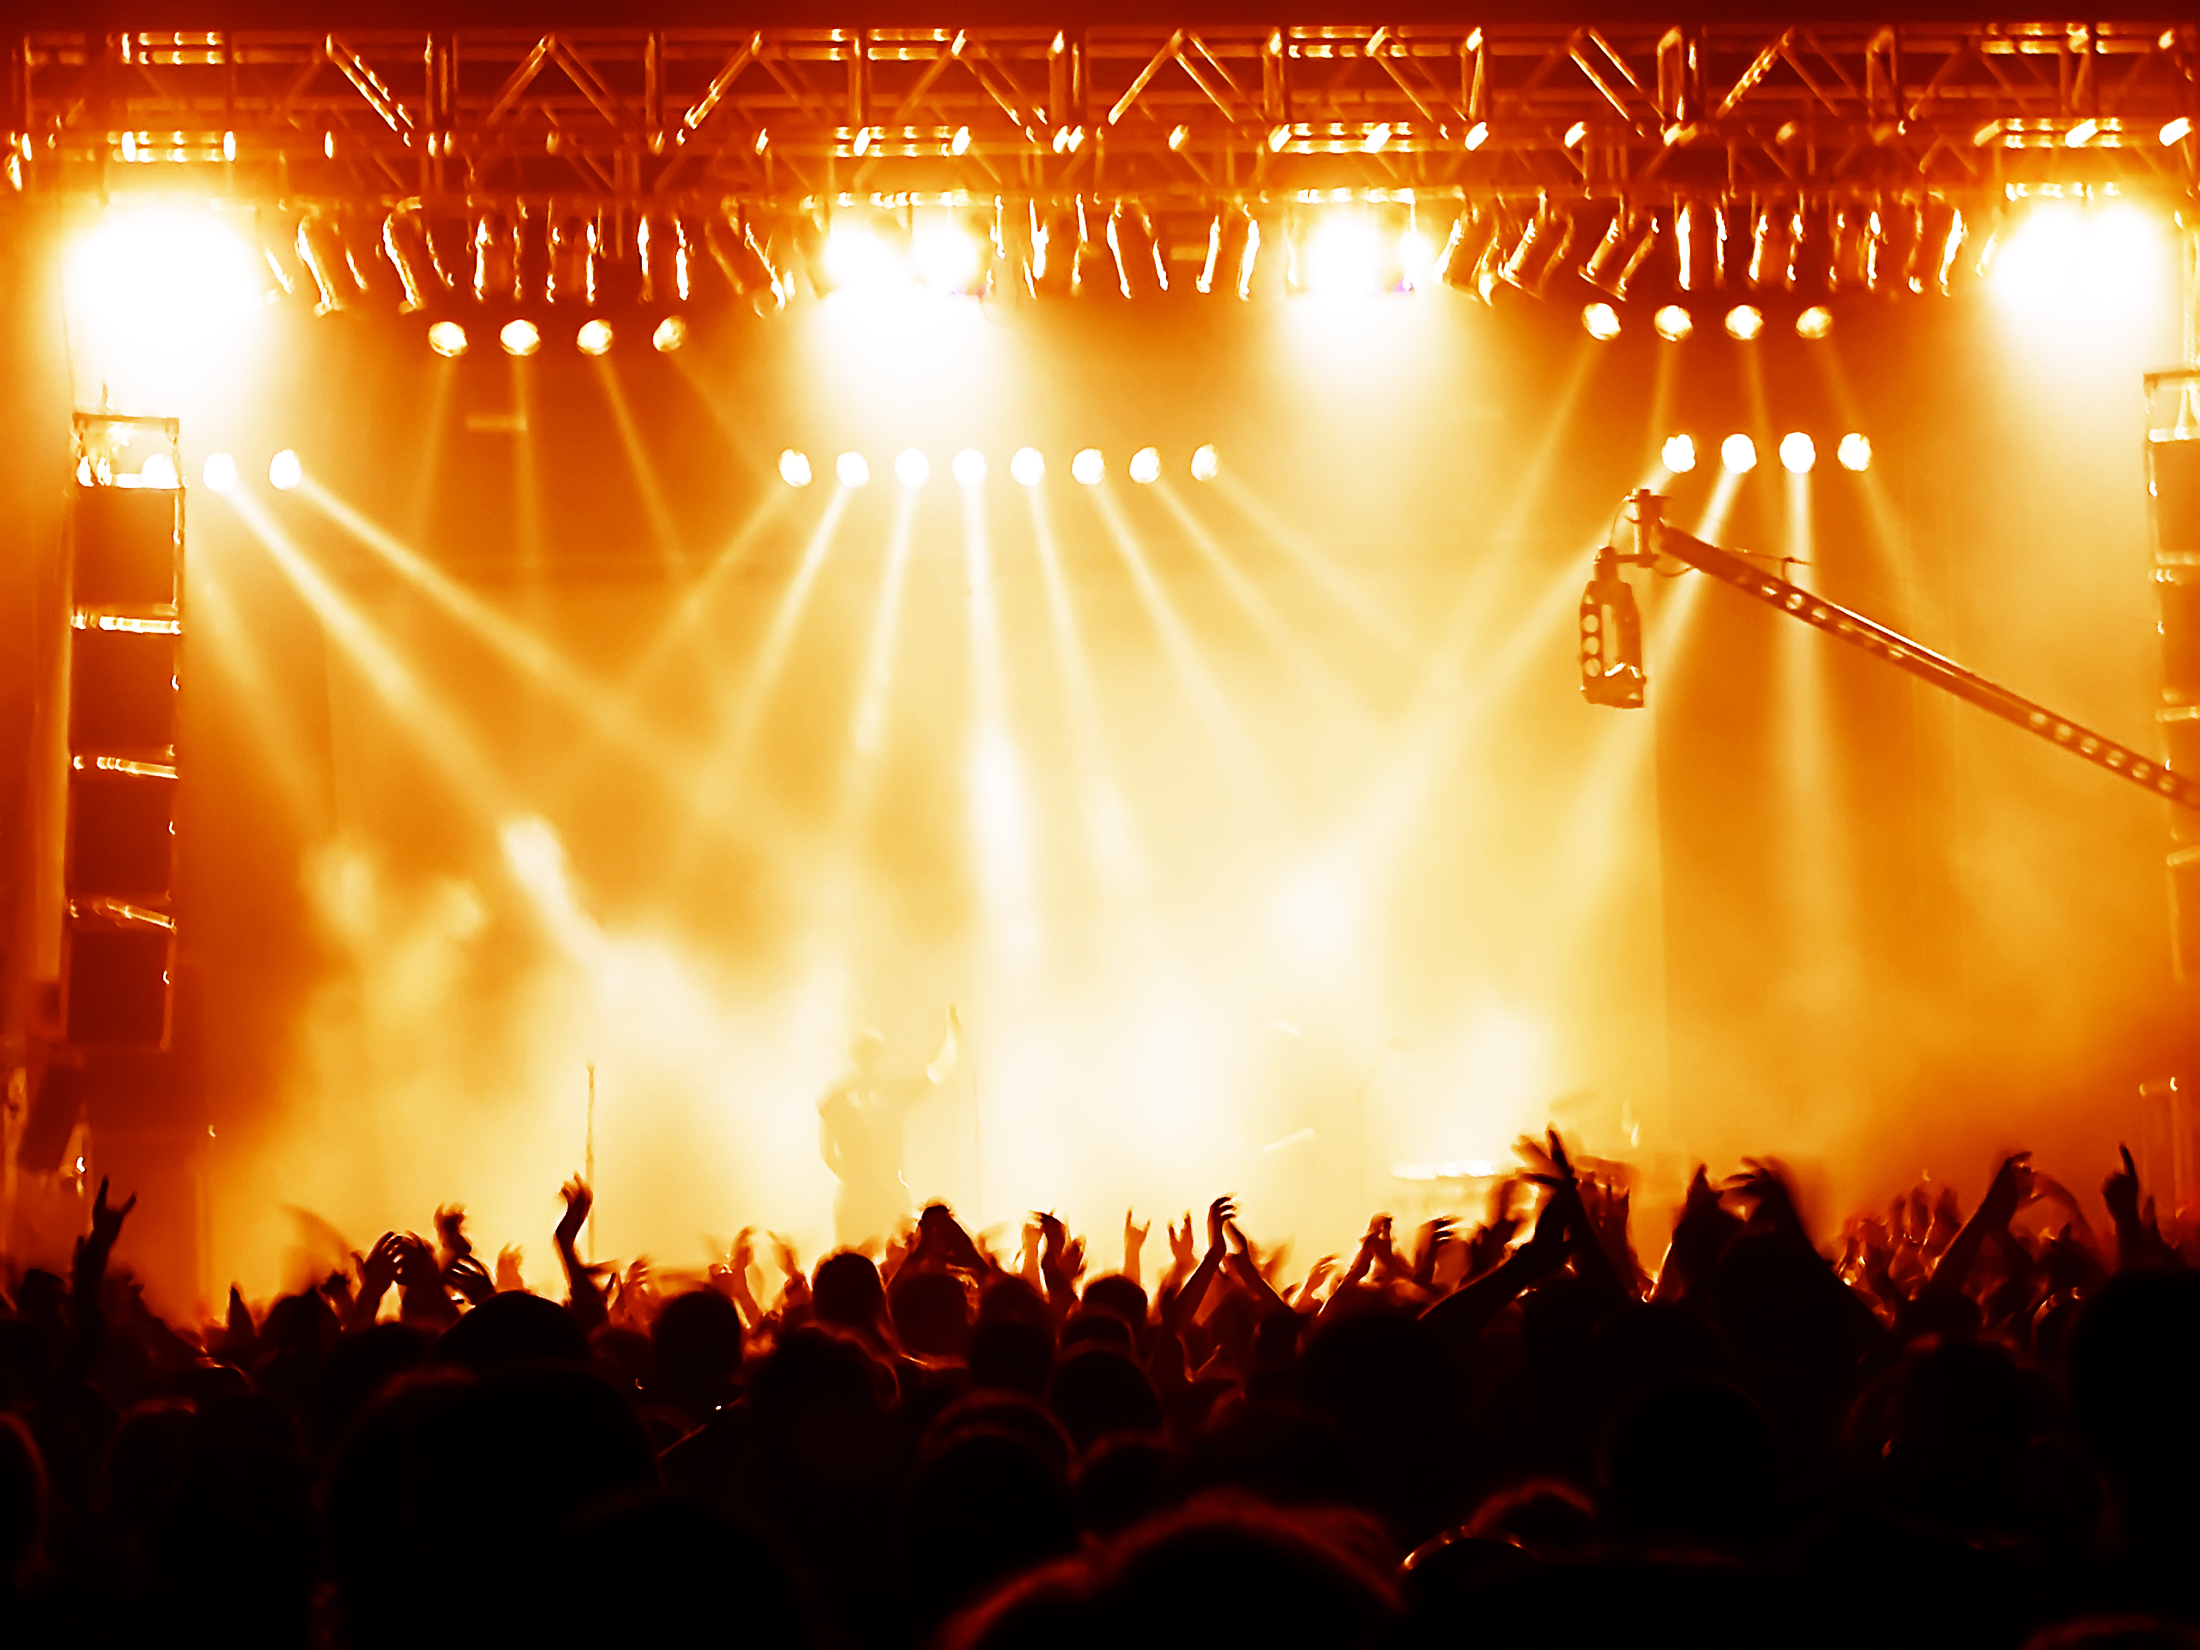 concert crowds concert crowd download concert crowd concert crowd 2200x1650